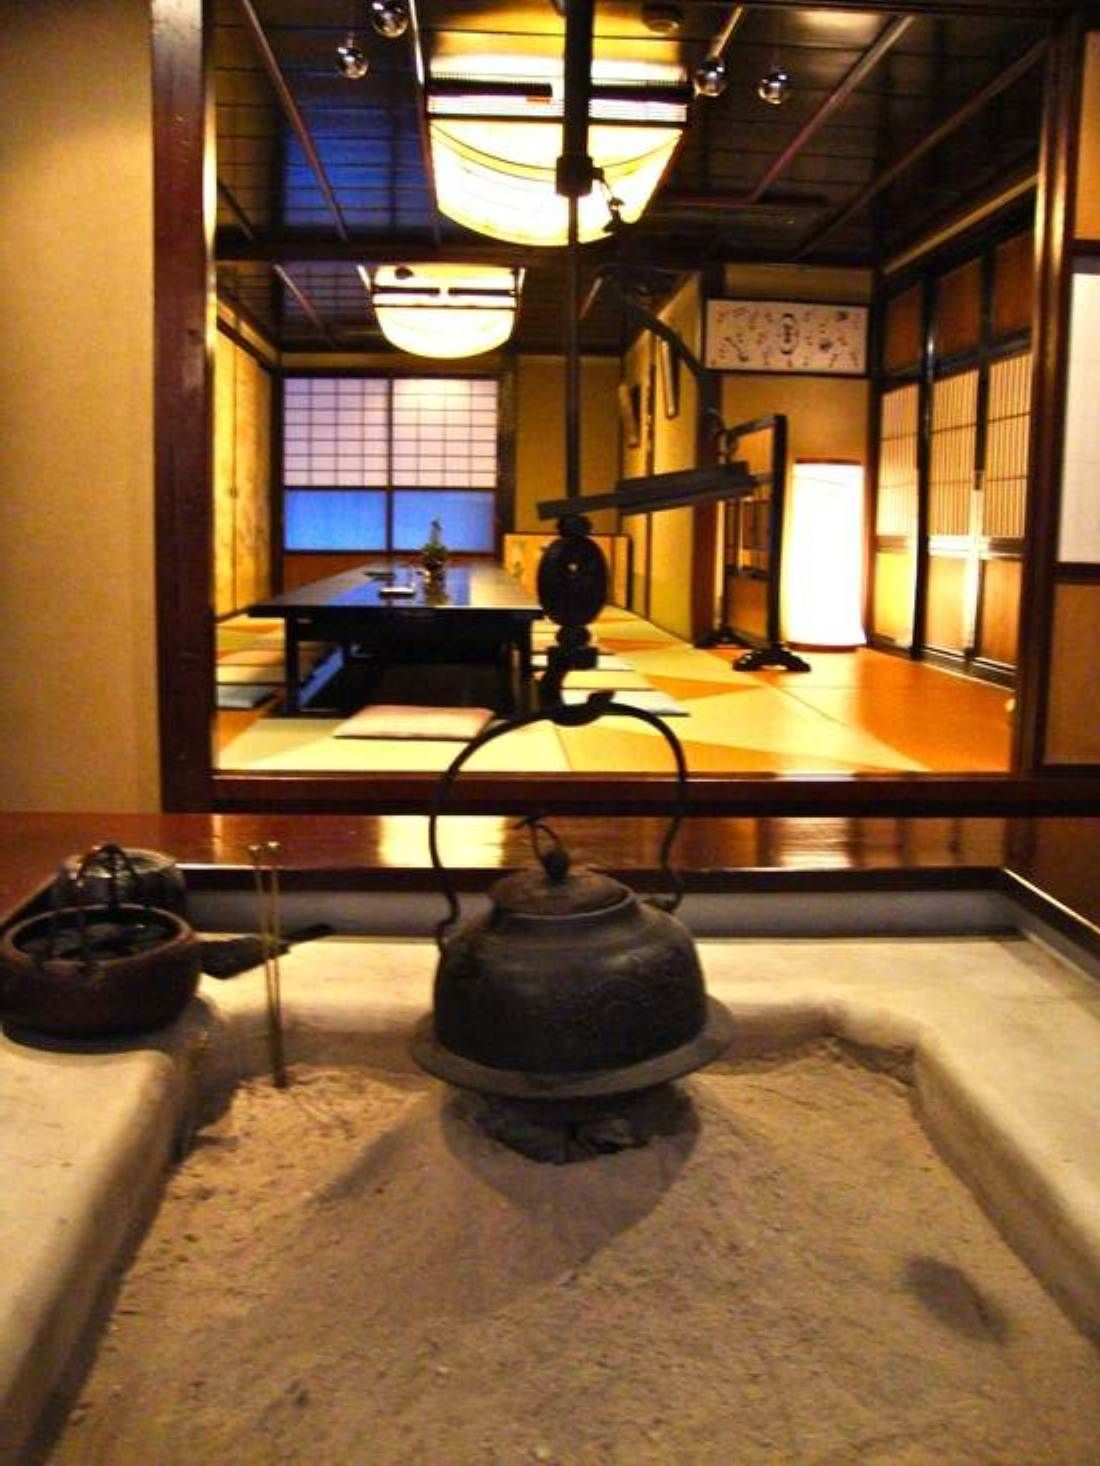 Awesome Traditional Japanese House Design Traditional Japanese House Japanese House Japanese House Design